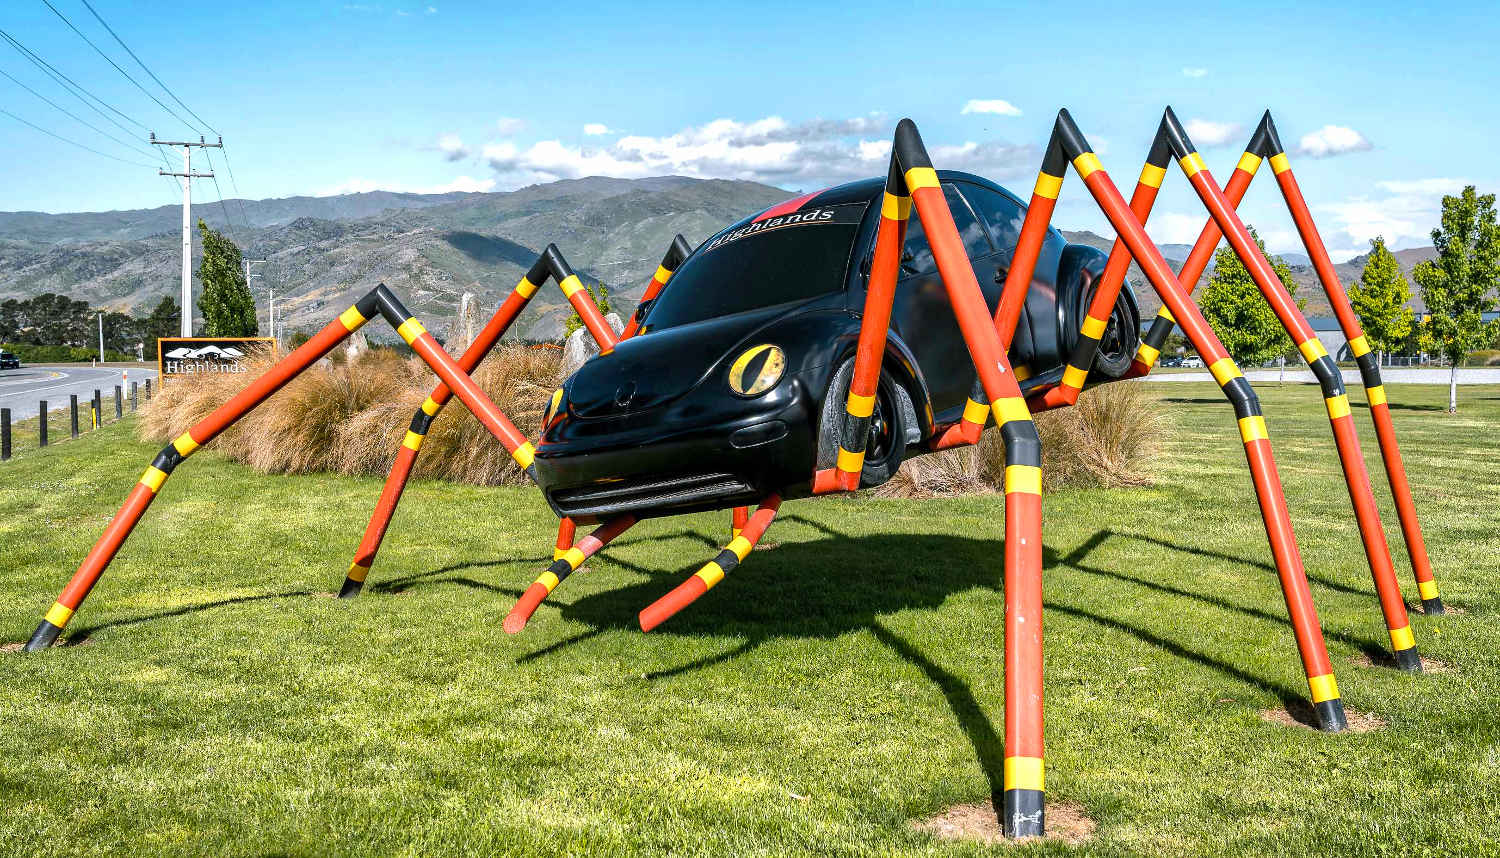 Copy of Cromwell beetle sculpture Highland Car Museum,New Zealand